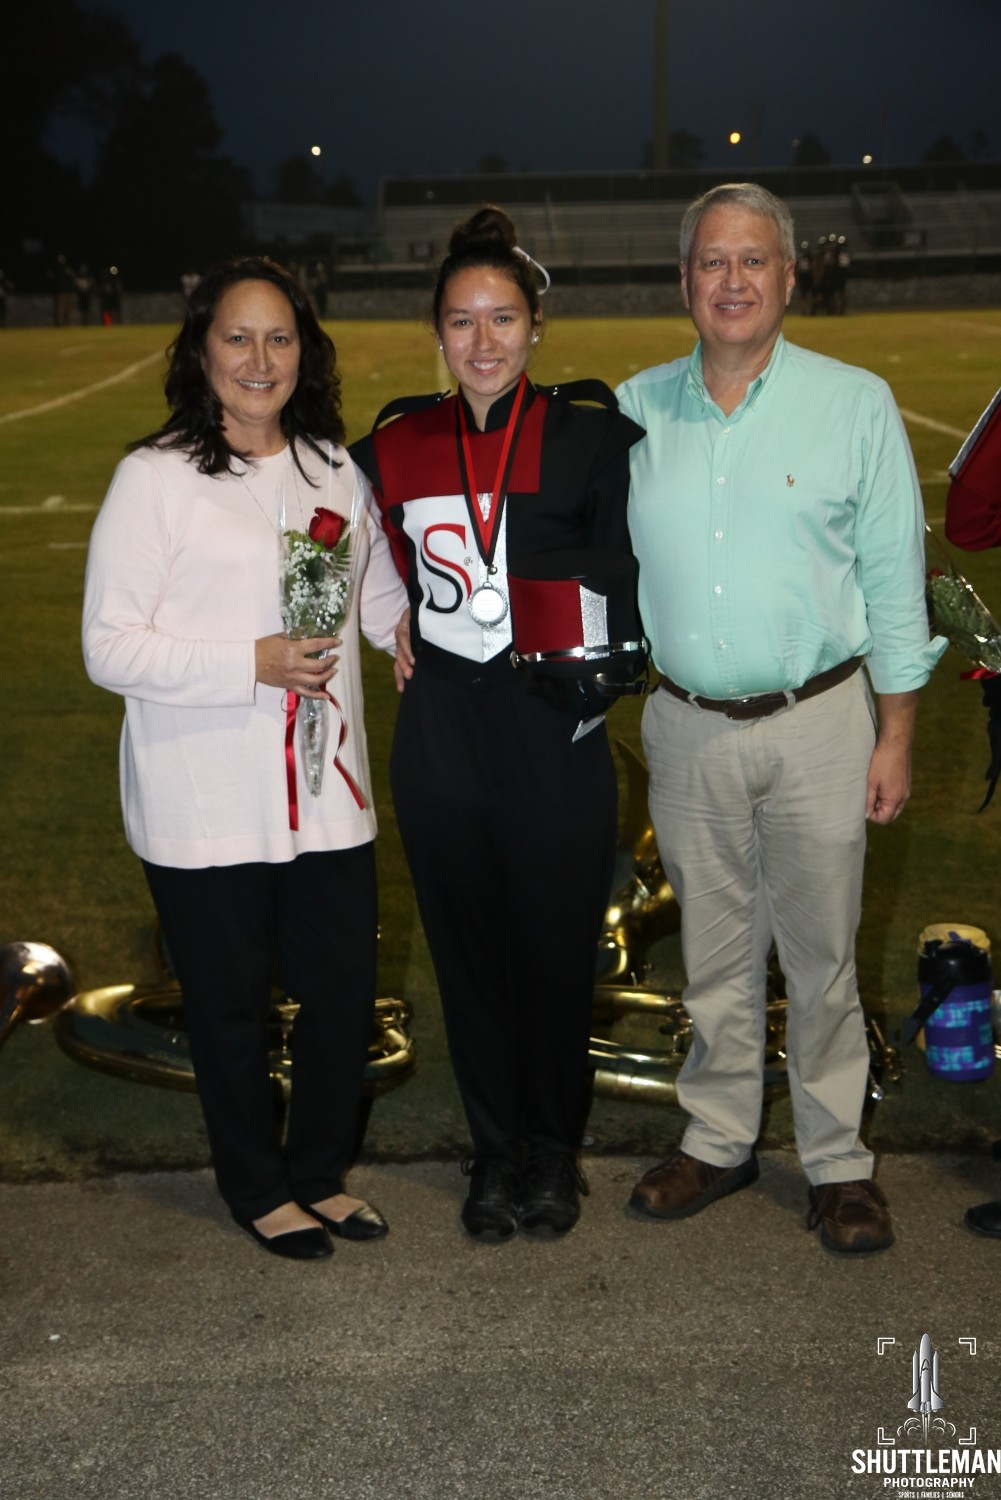 Senior Night Photos 2017-18,Decatur,Football,Senior night,Sparkman,